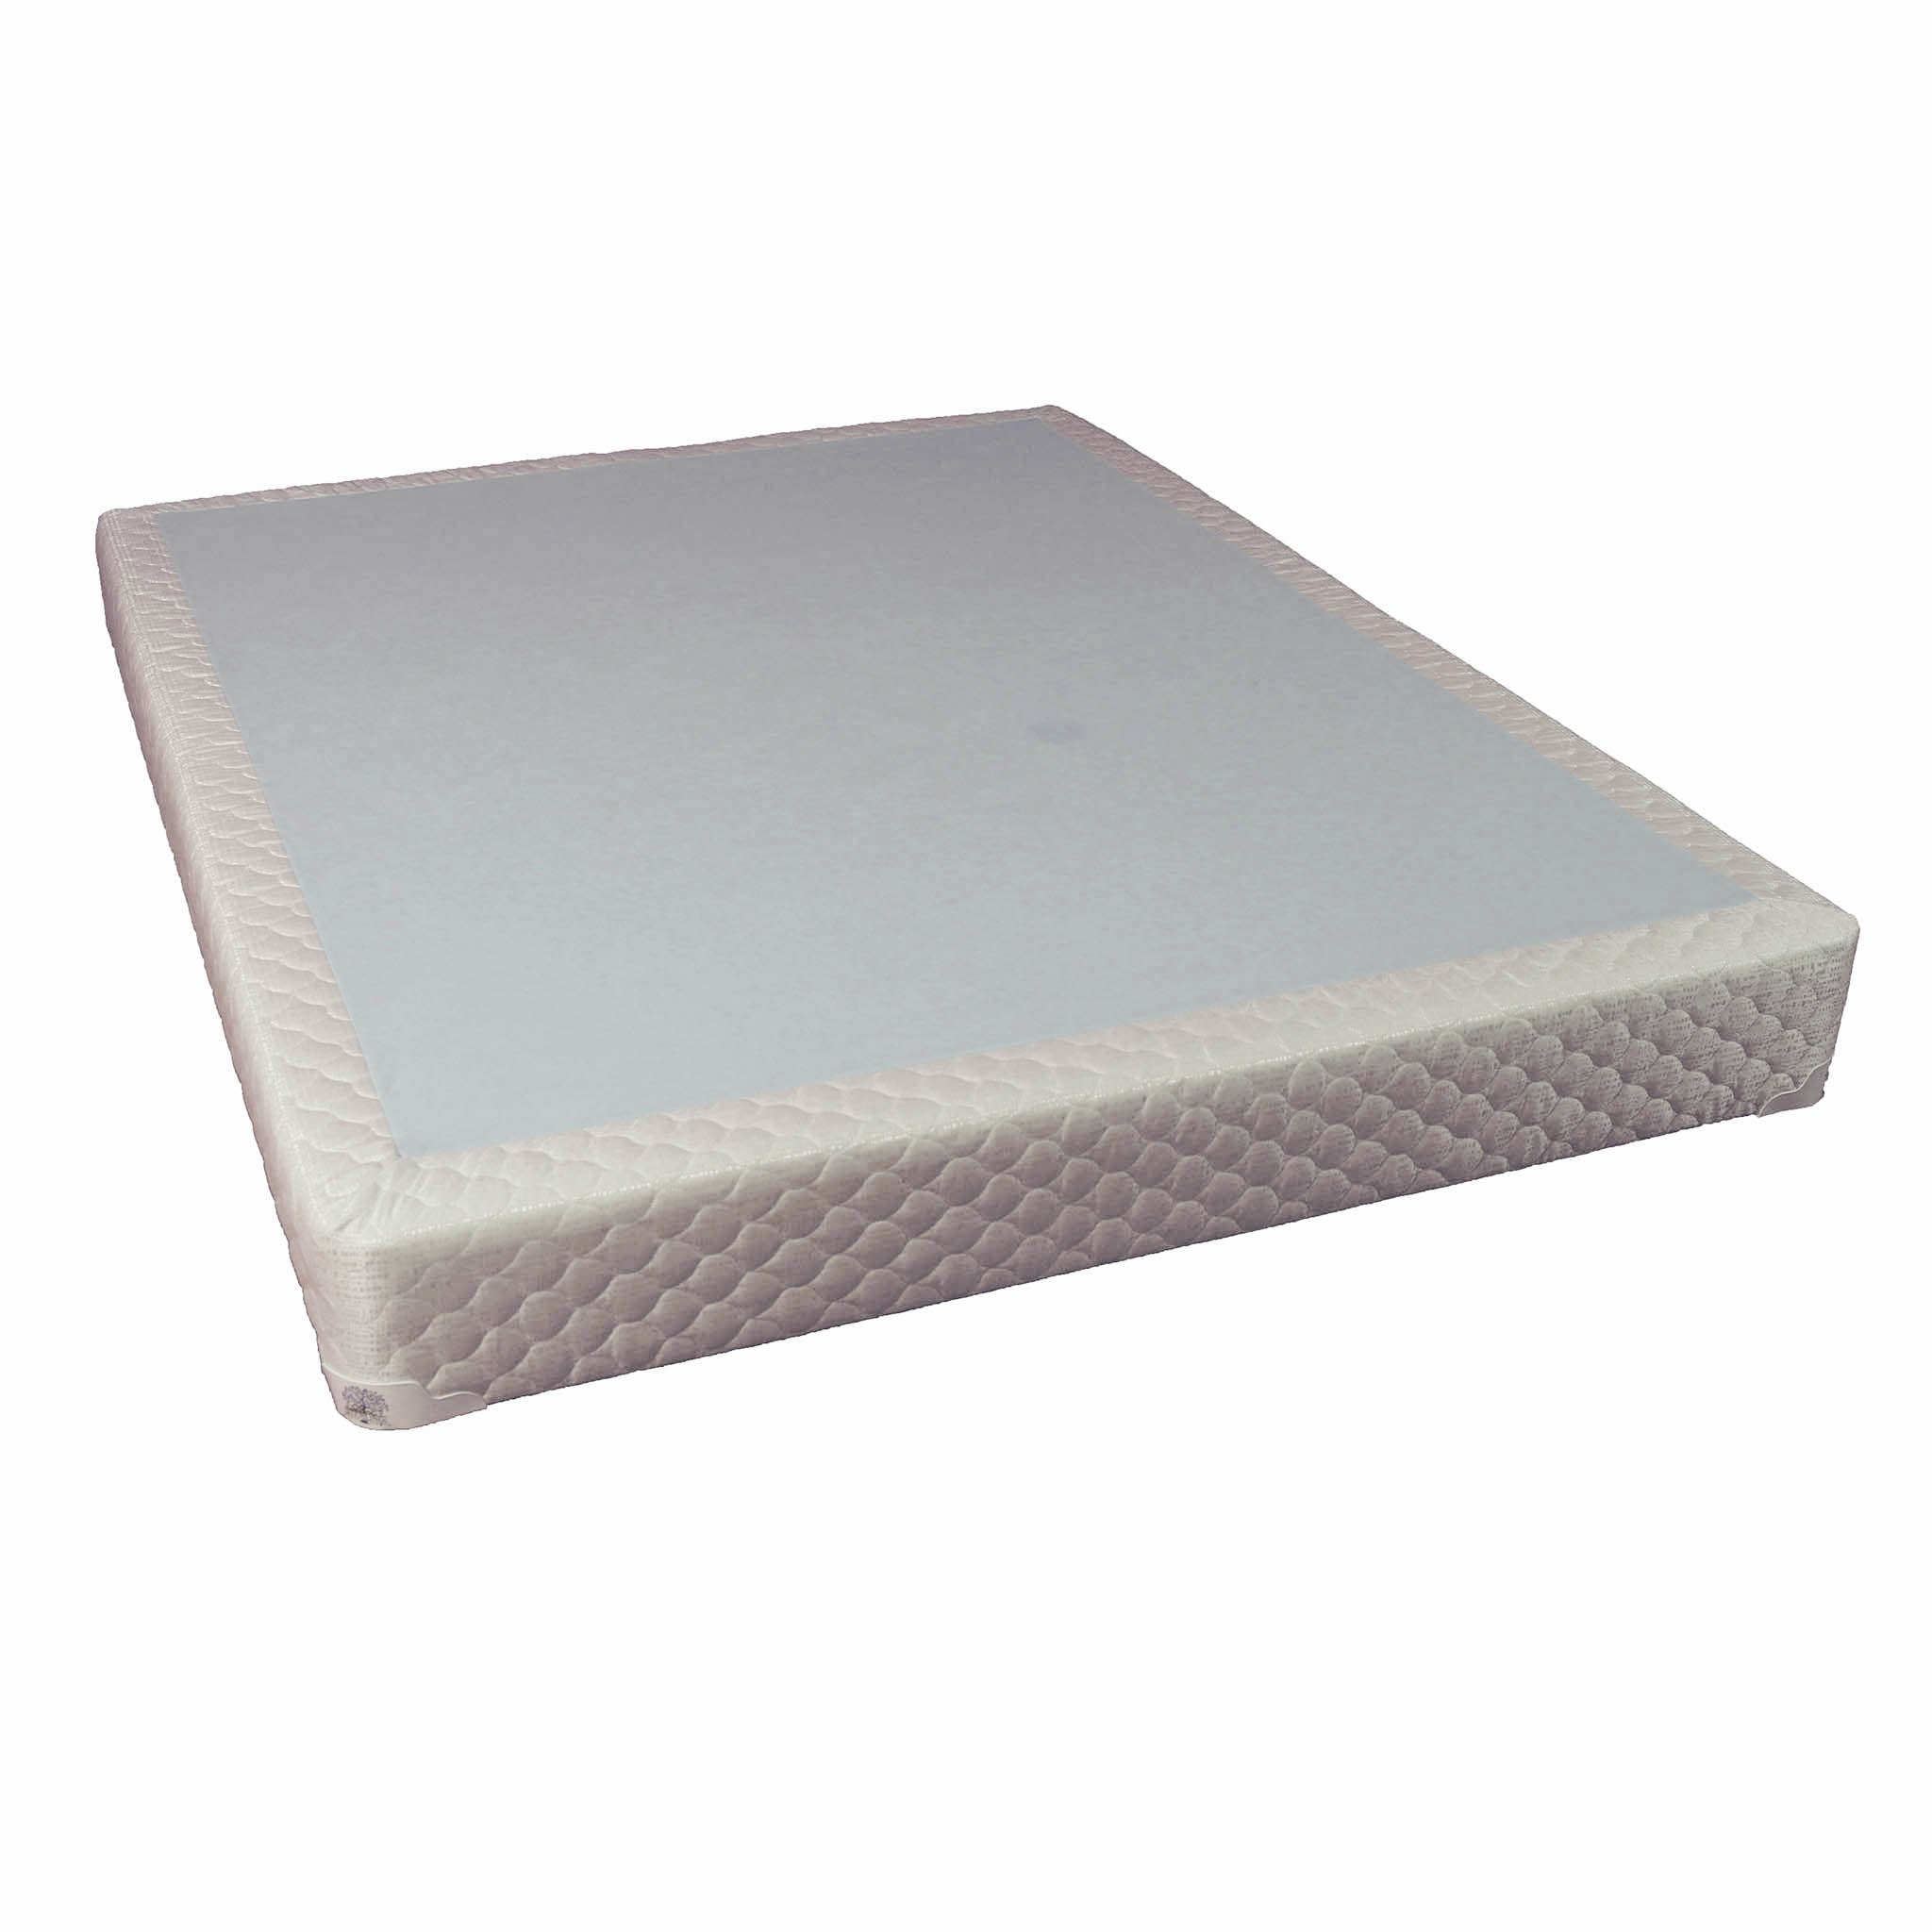 "8"" Mattress Foundation: Hospitality Innerspring Mattress - Sterling Sleep Systems"